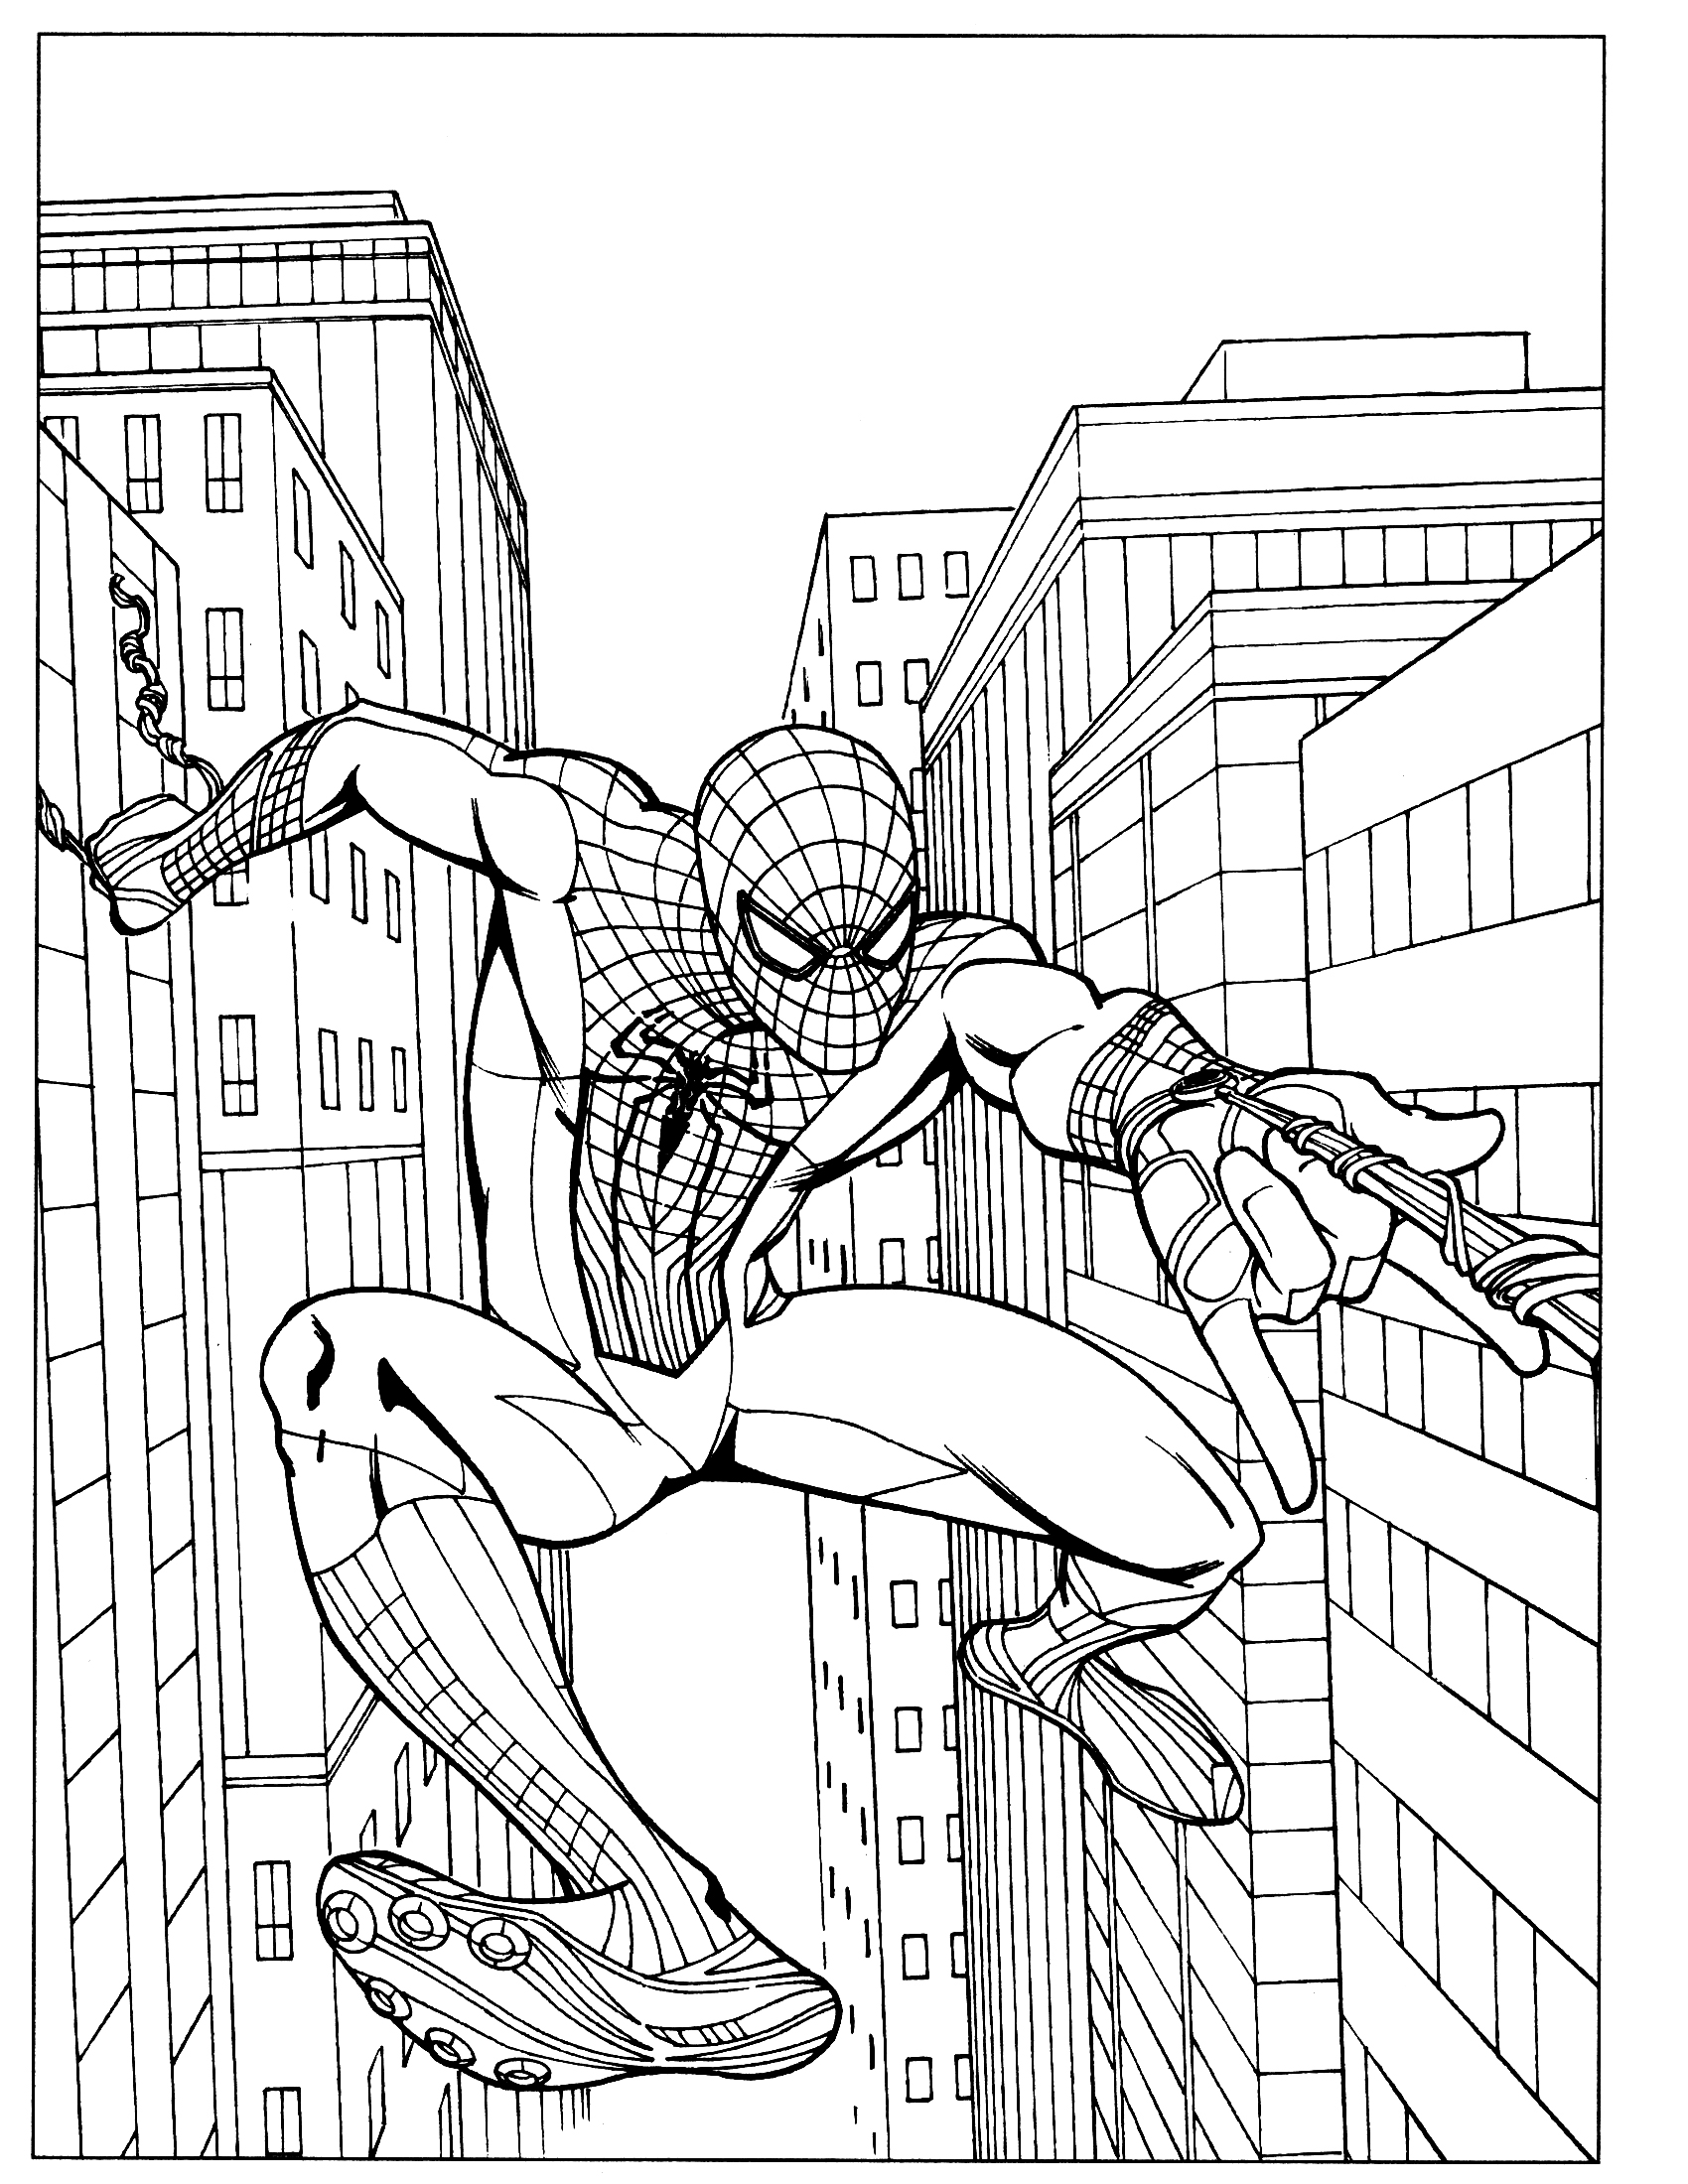 Spider Man 3 Drawing at GetDrawings.com | Free for personal use ...